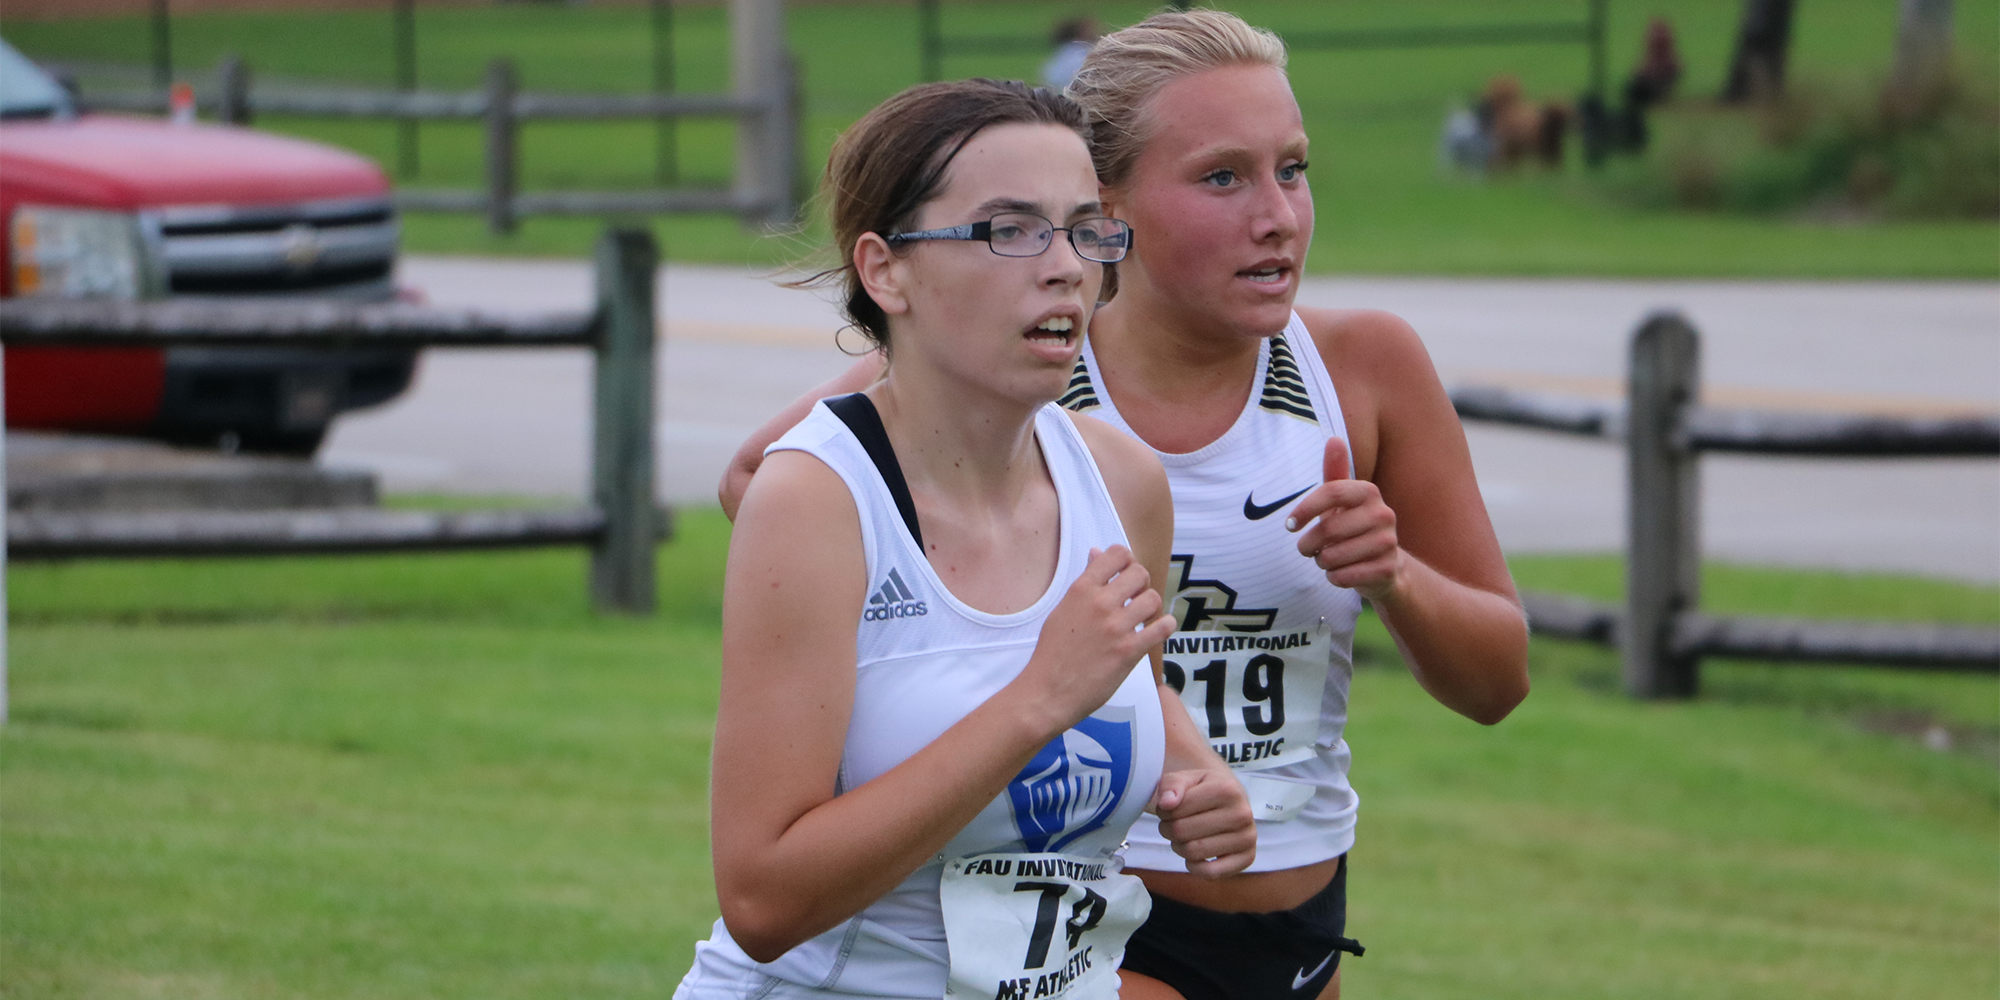 Women's Cross Country Paced by Jones at Royals Challenge